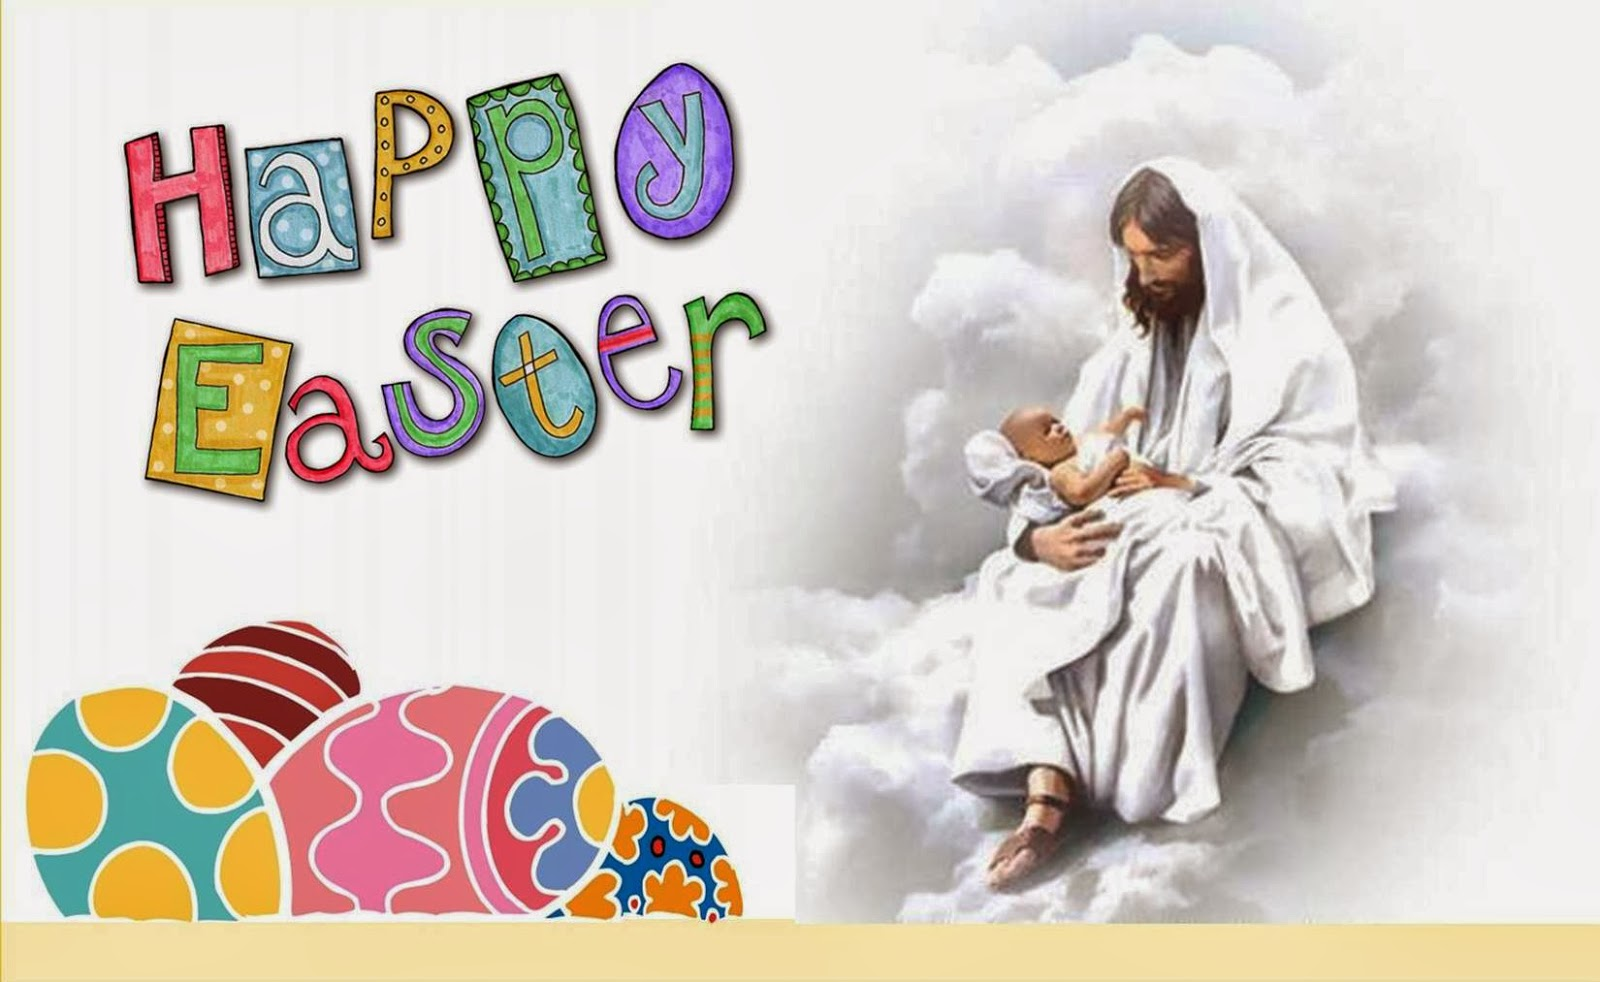 Happy Easter Cards, part 2